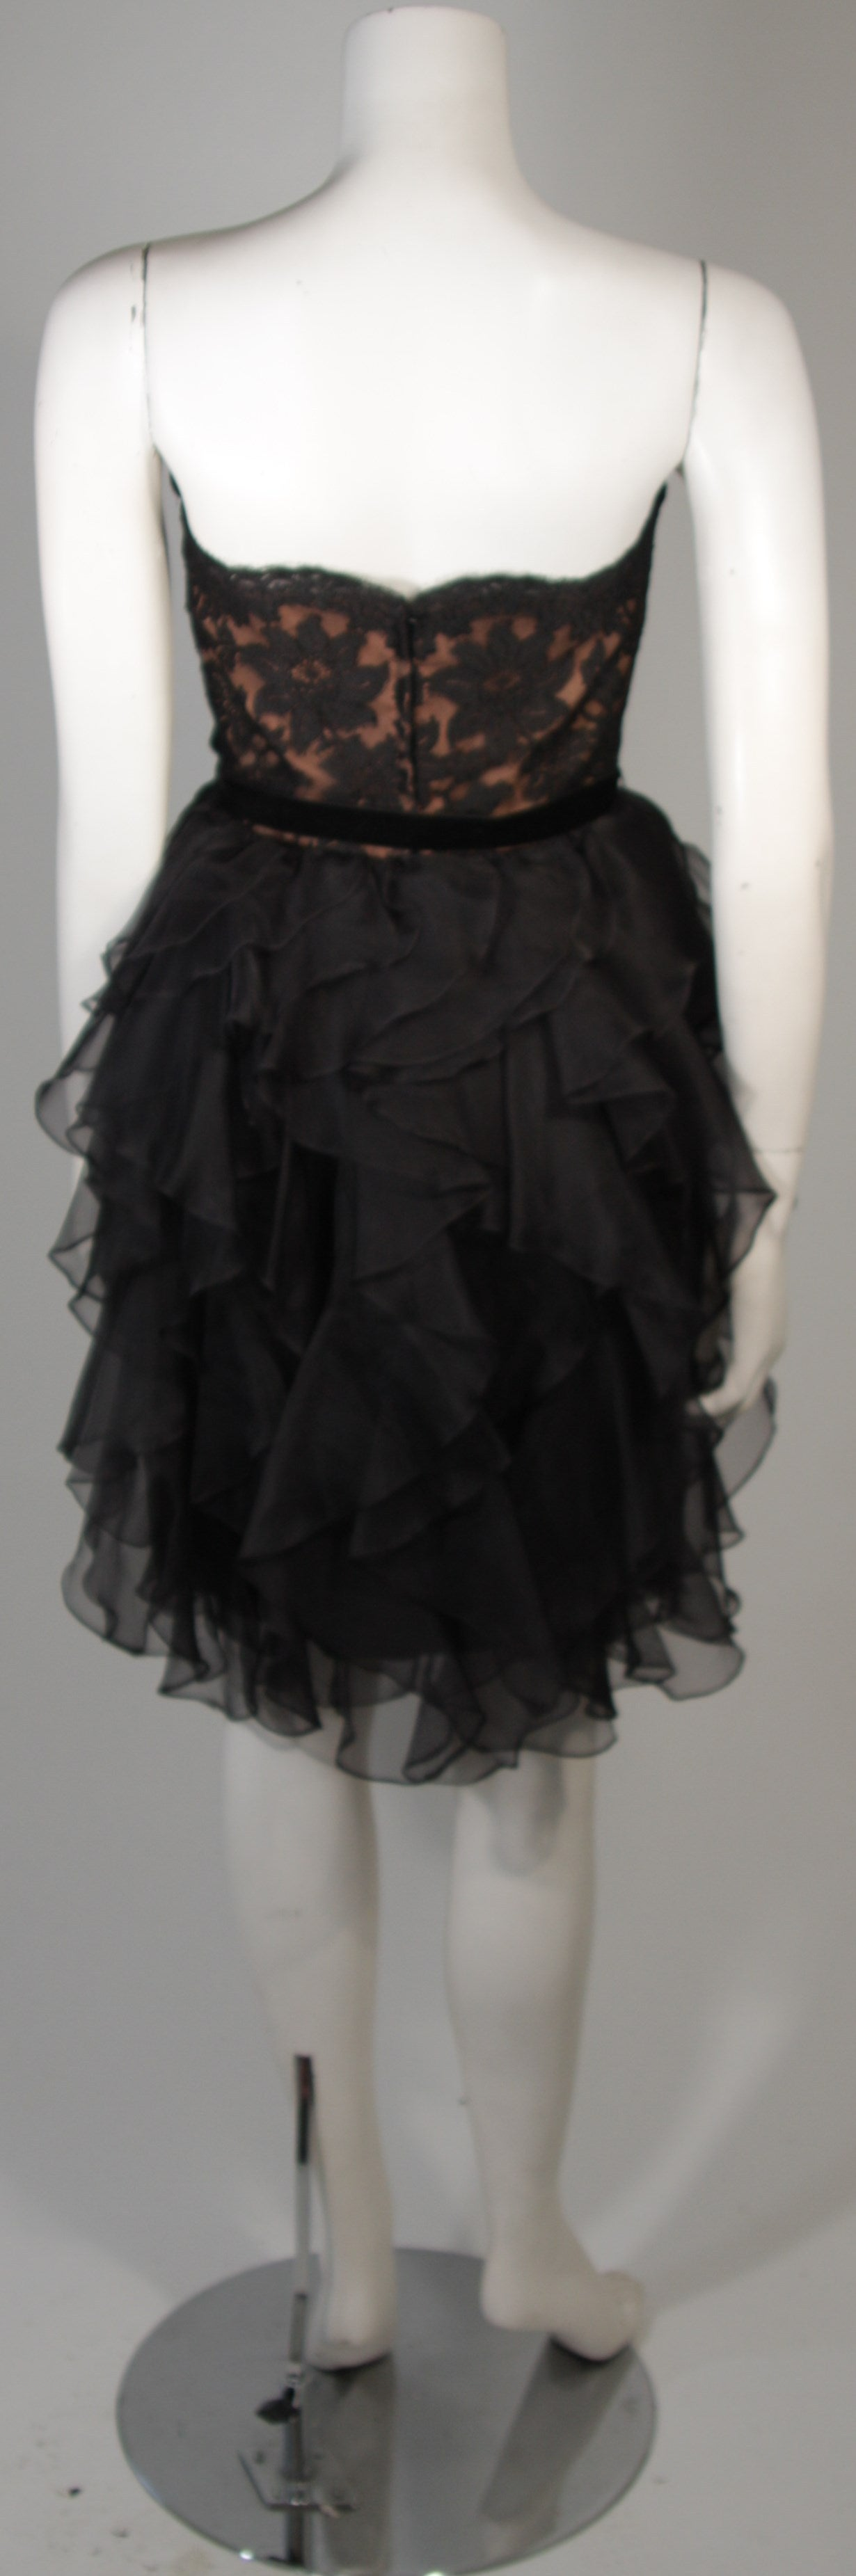 Jill Richards Black Lace Cocktail Dress with Layered Silk Skirt Size 6 For Sale 4